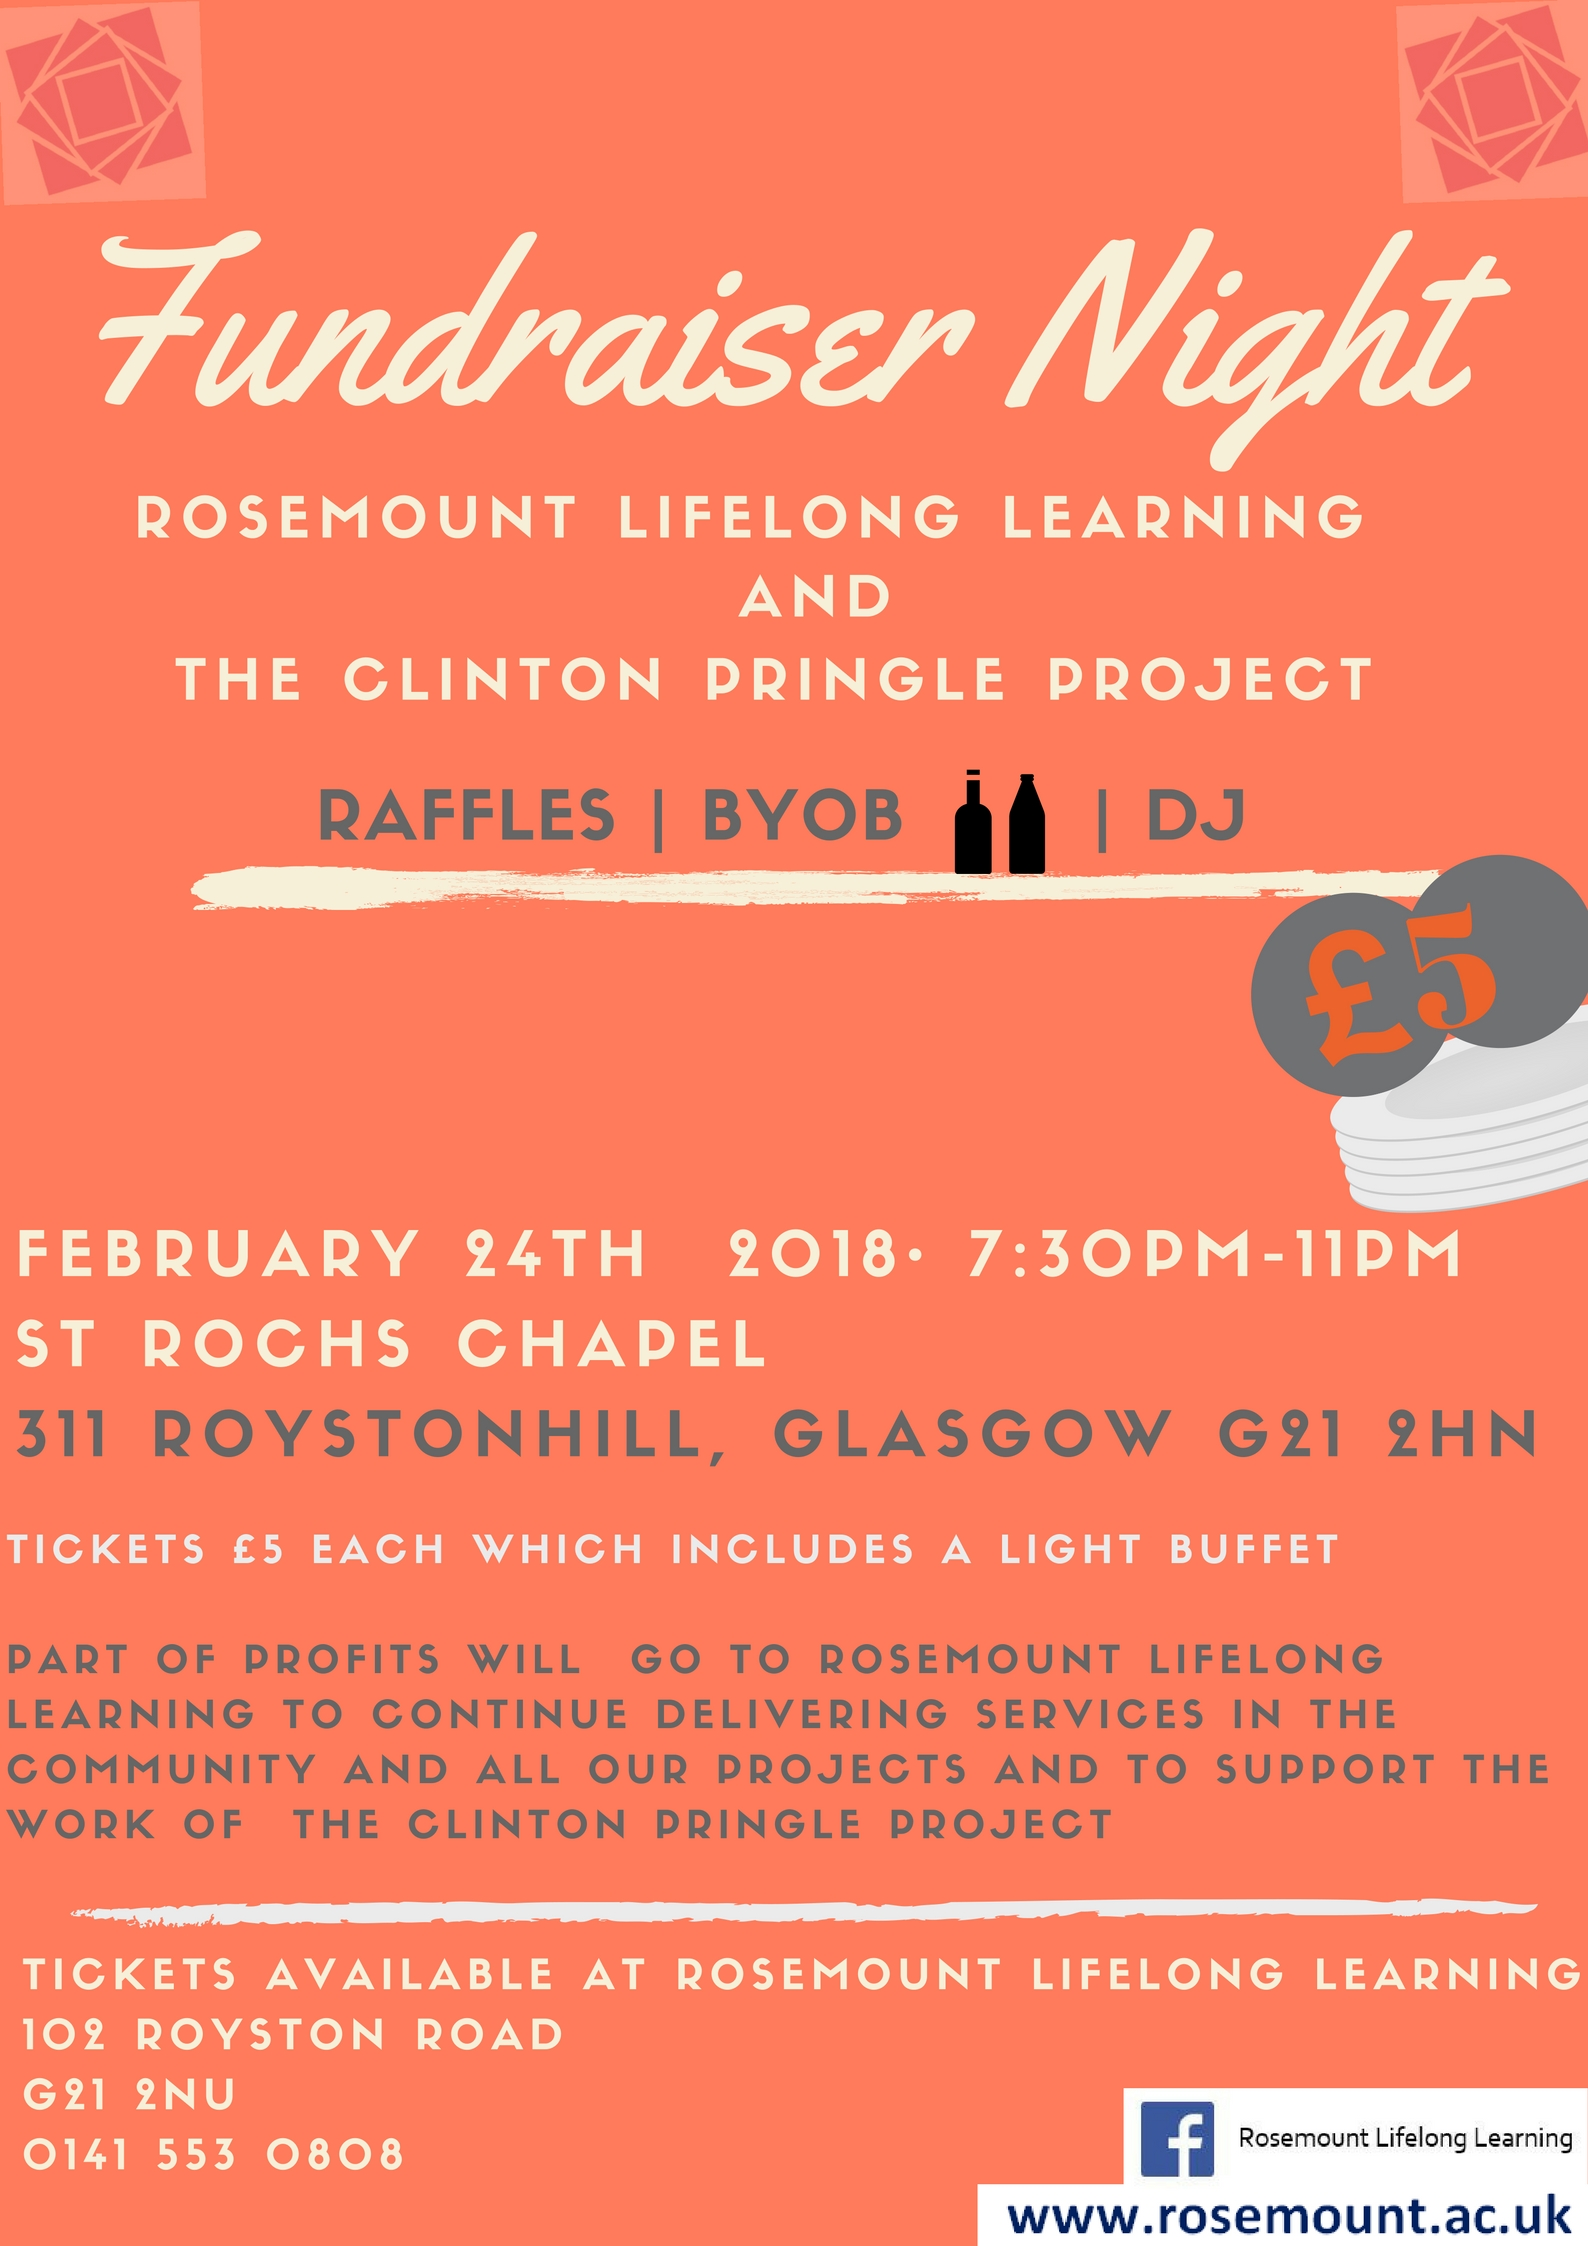 RLL AND CP FUNDRAISER NIGHT